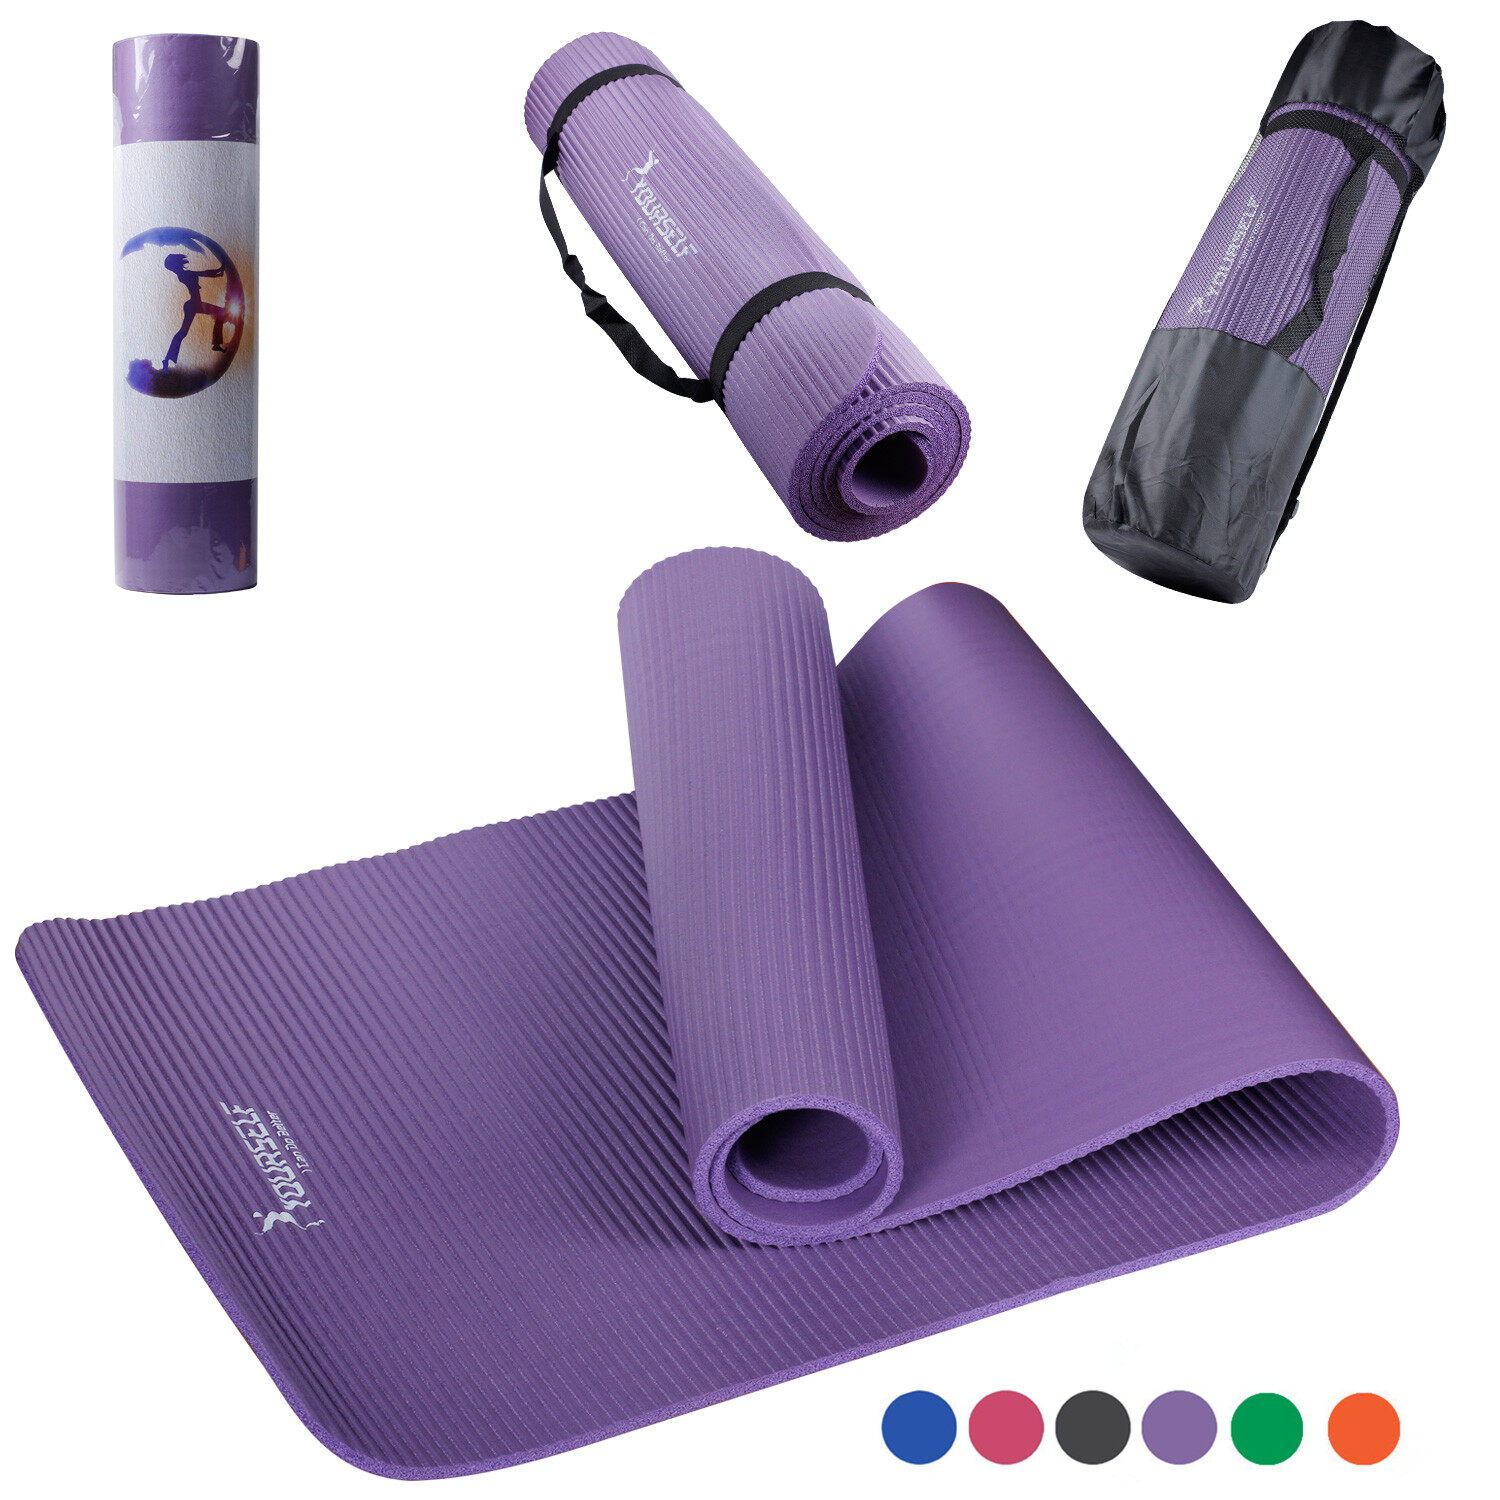 Thickest Yoga Mat Available Skidless Yoga Mat Syourself